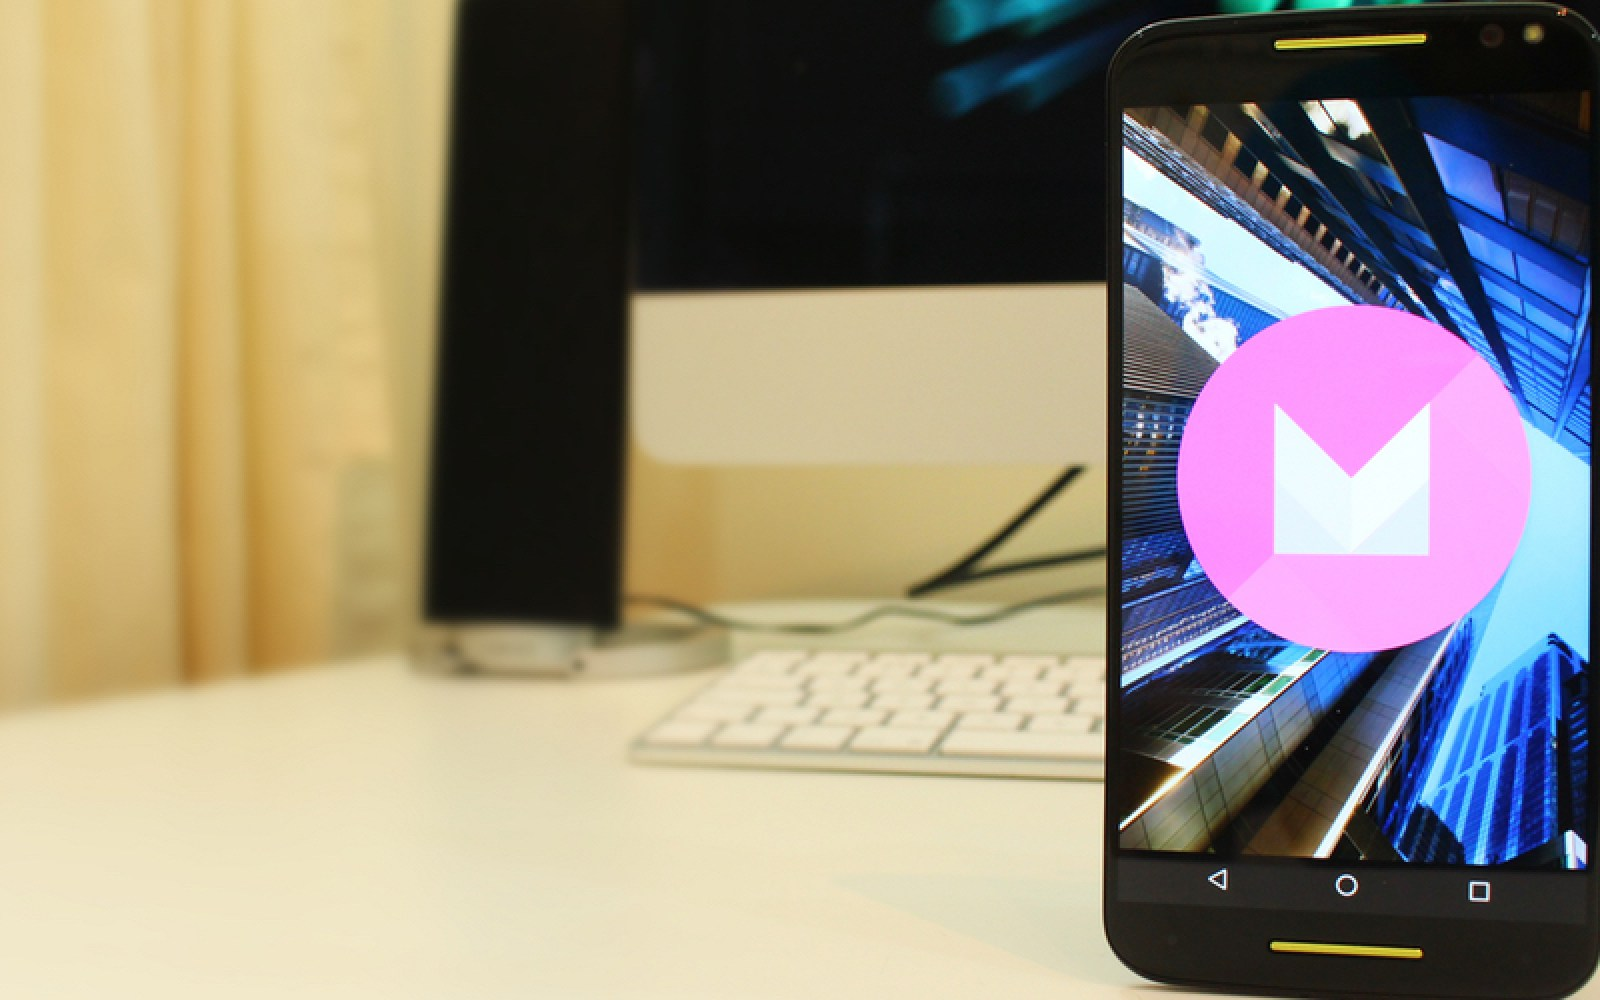 New report compares Android OEMs: Motorola is the fastest with updates, Sony has lowest crash rate